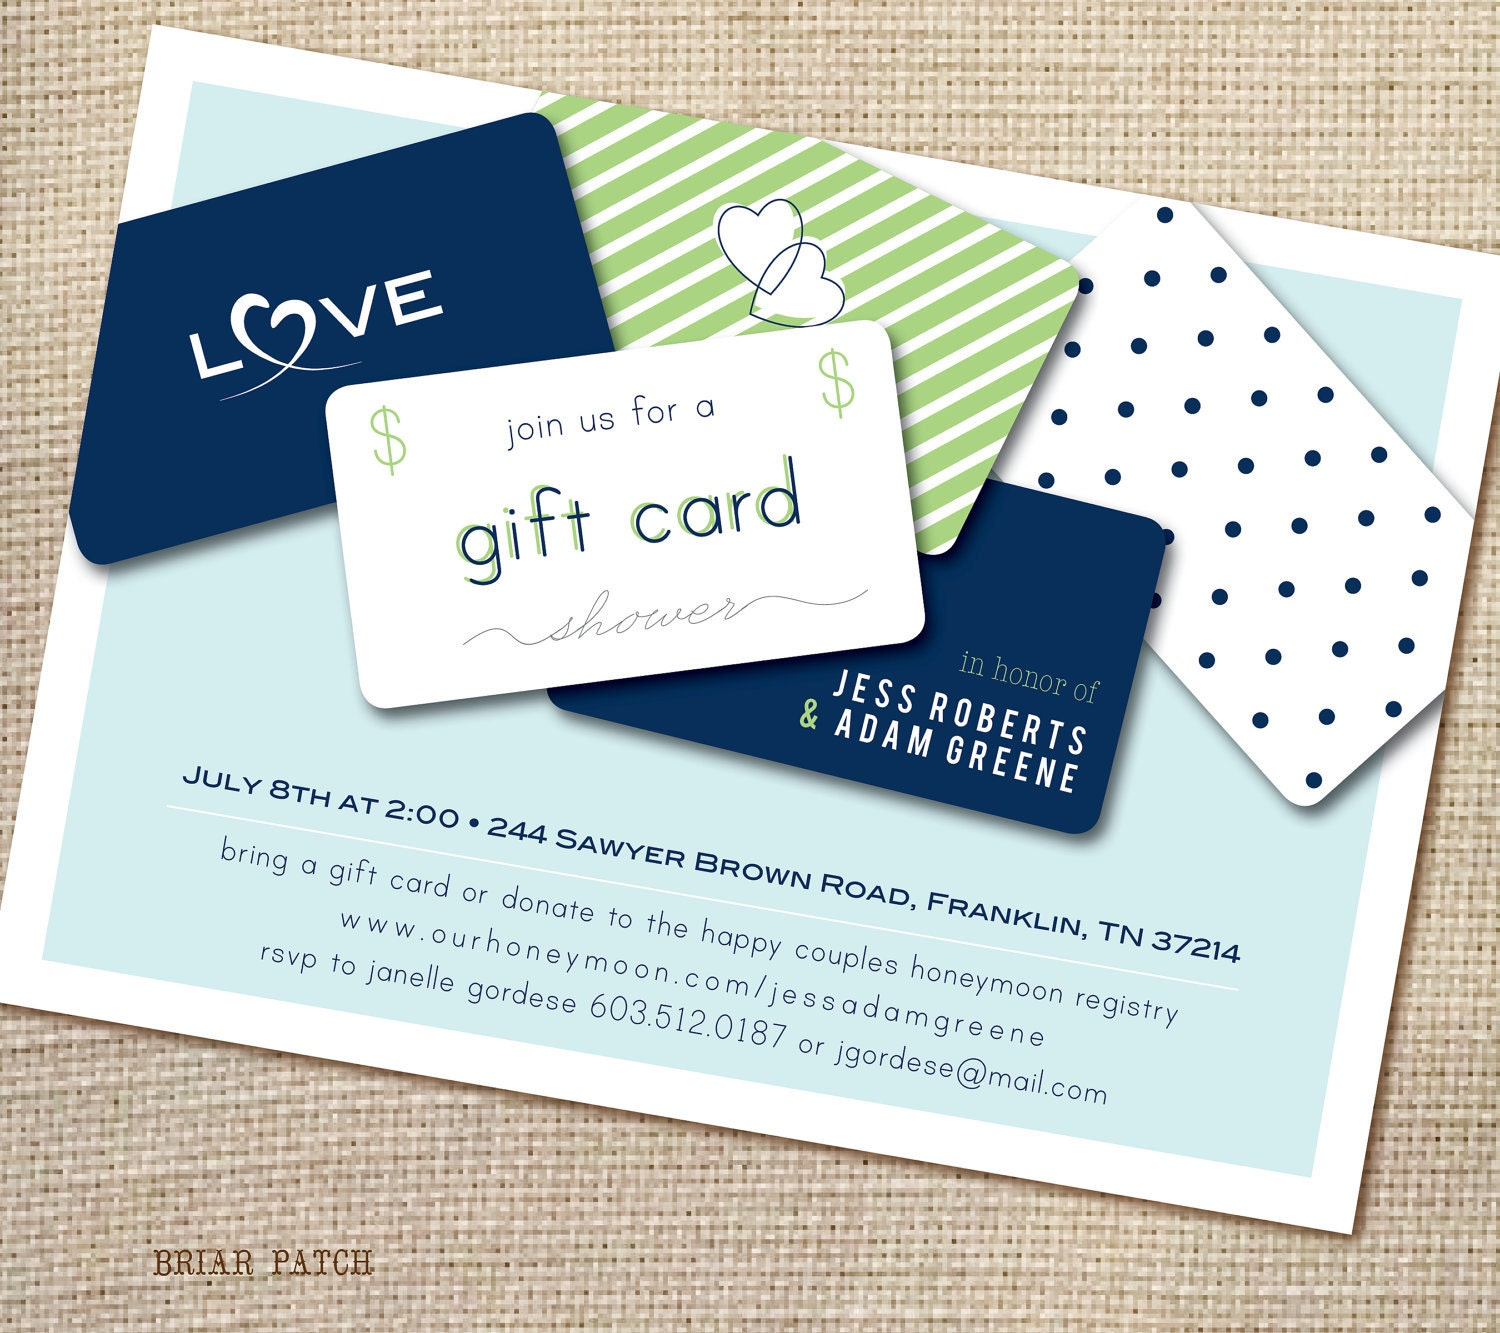 Delight & Decorum: Bridal Shower: Gift Card Q&A